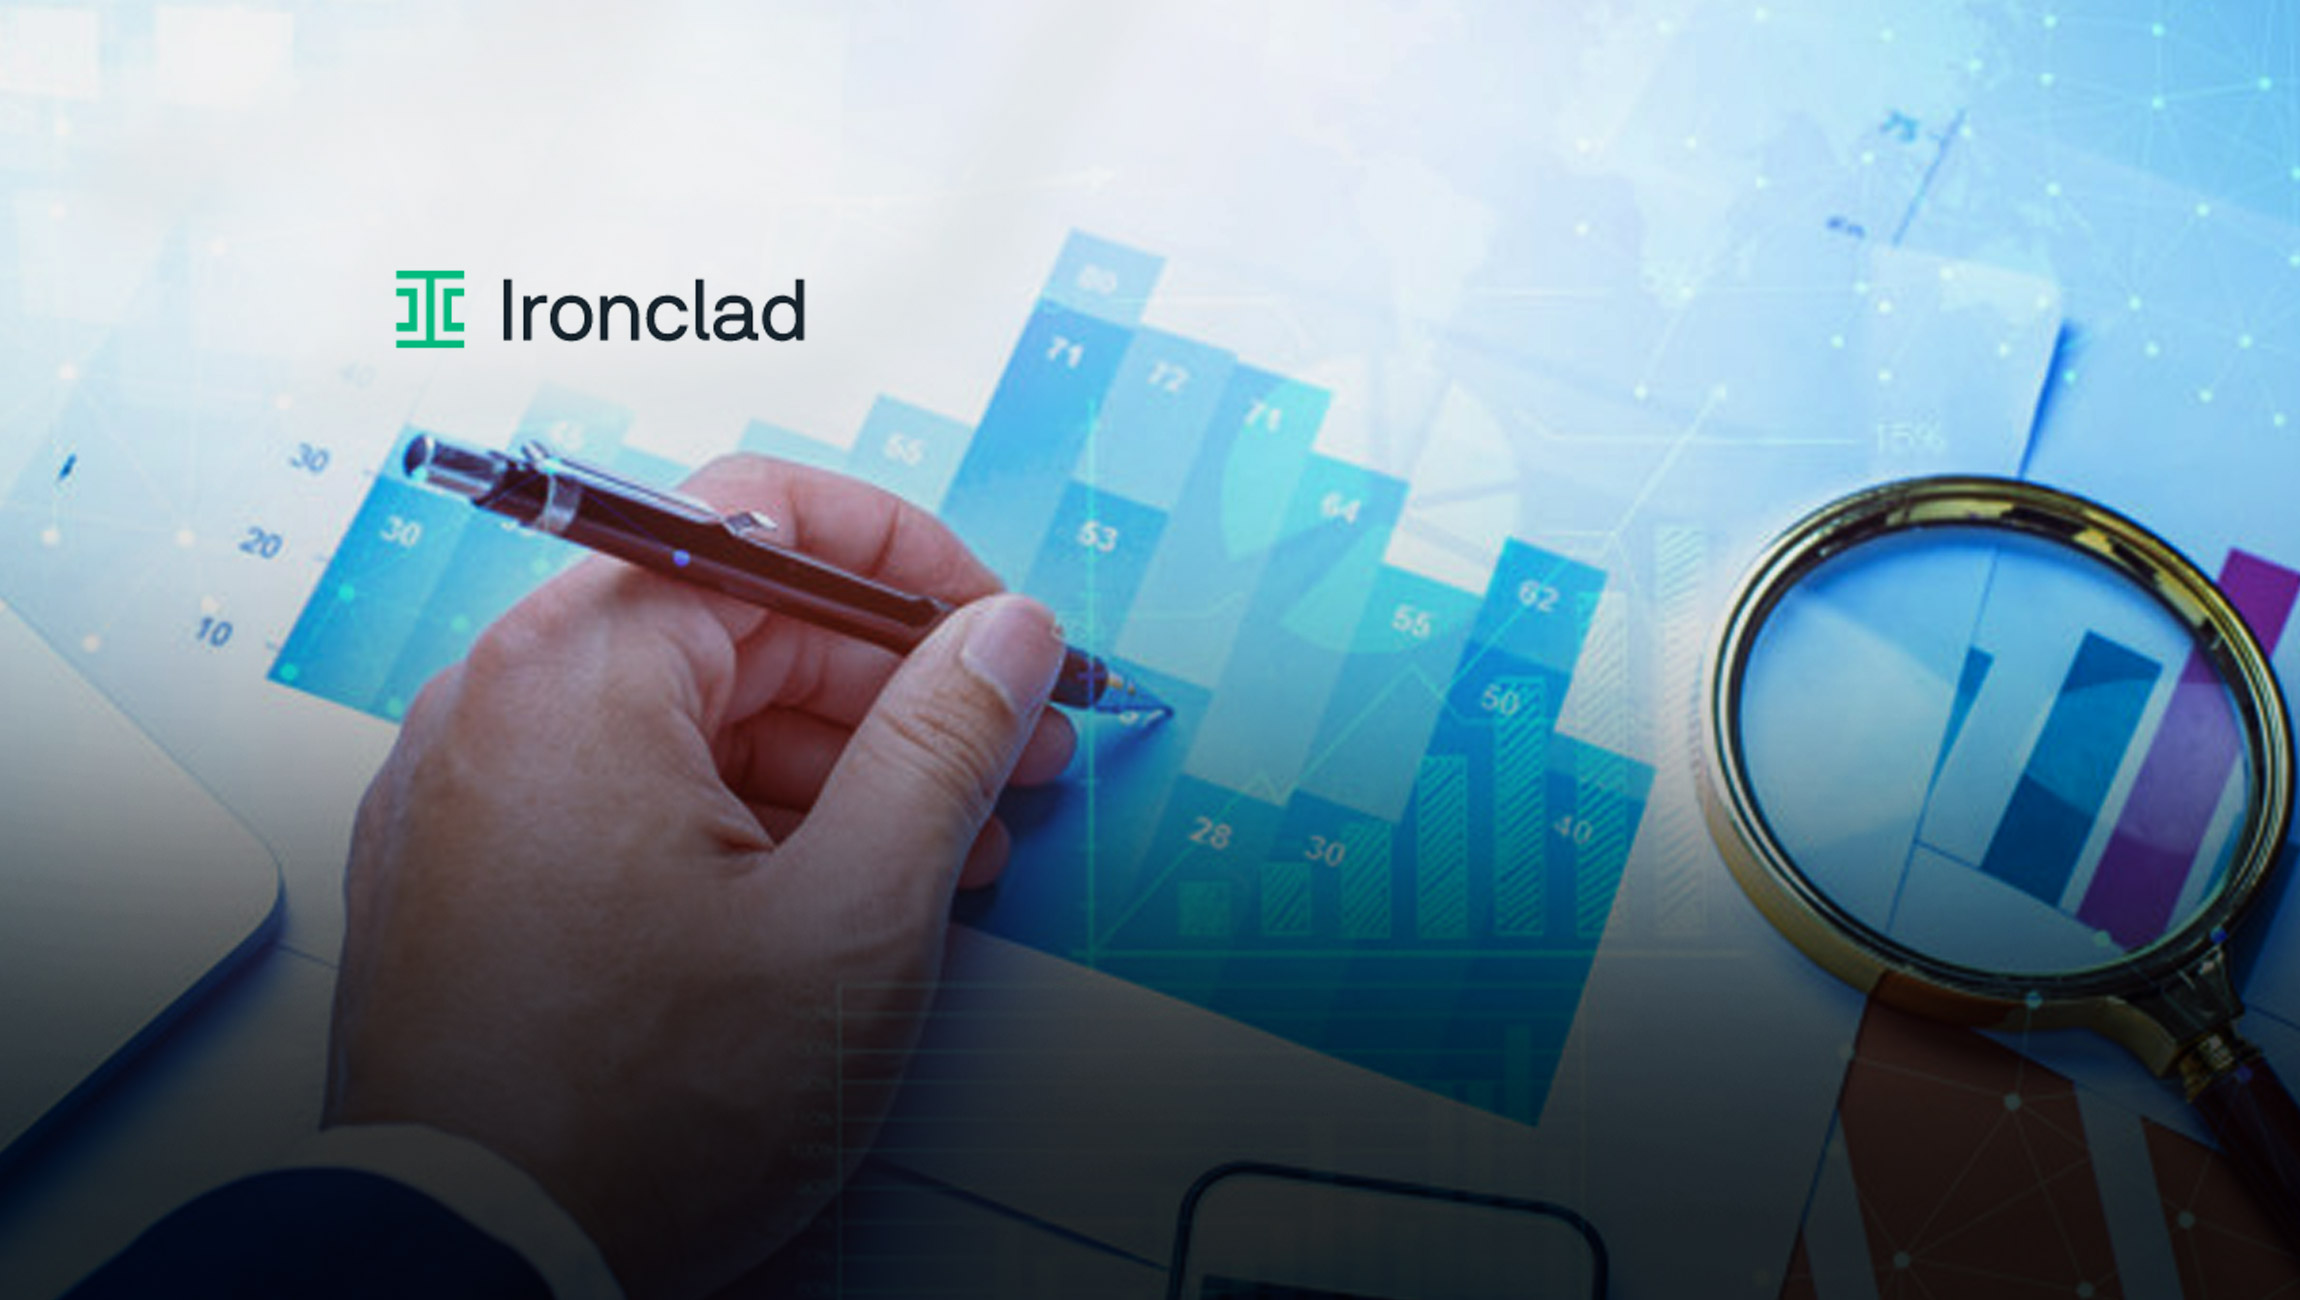 Ironclad Announces Expansion of Partner Ecosystem with New Investment and Growth of Company Leadership